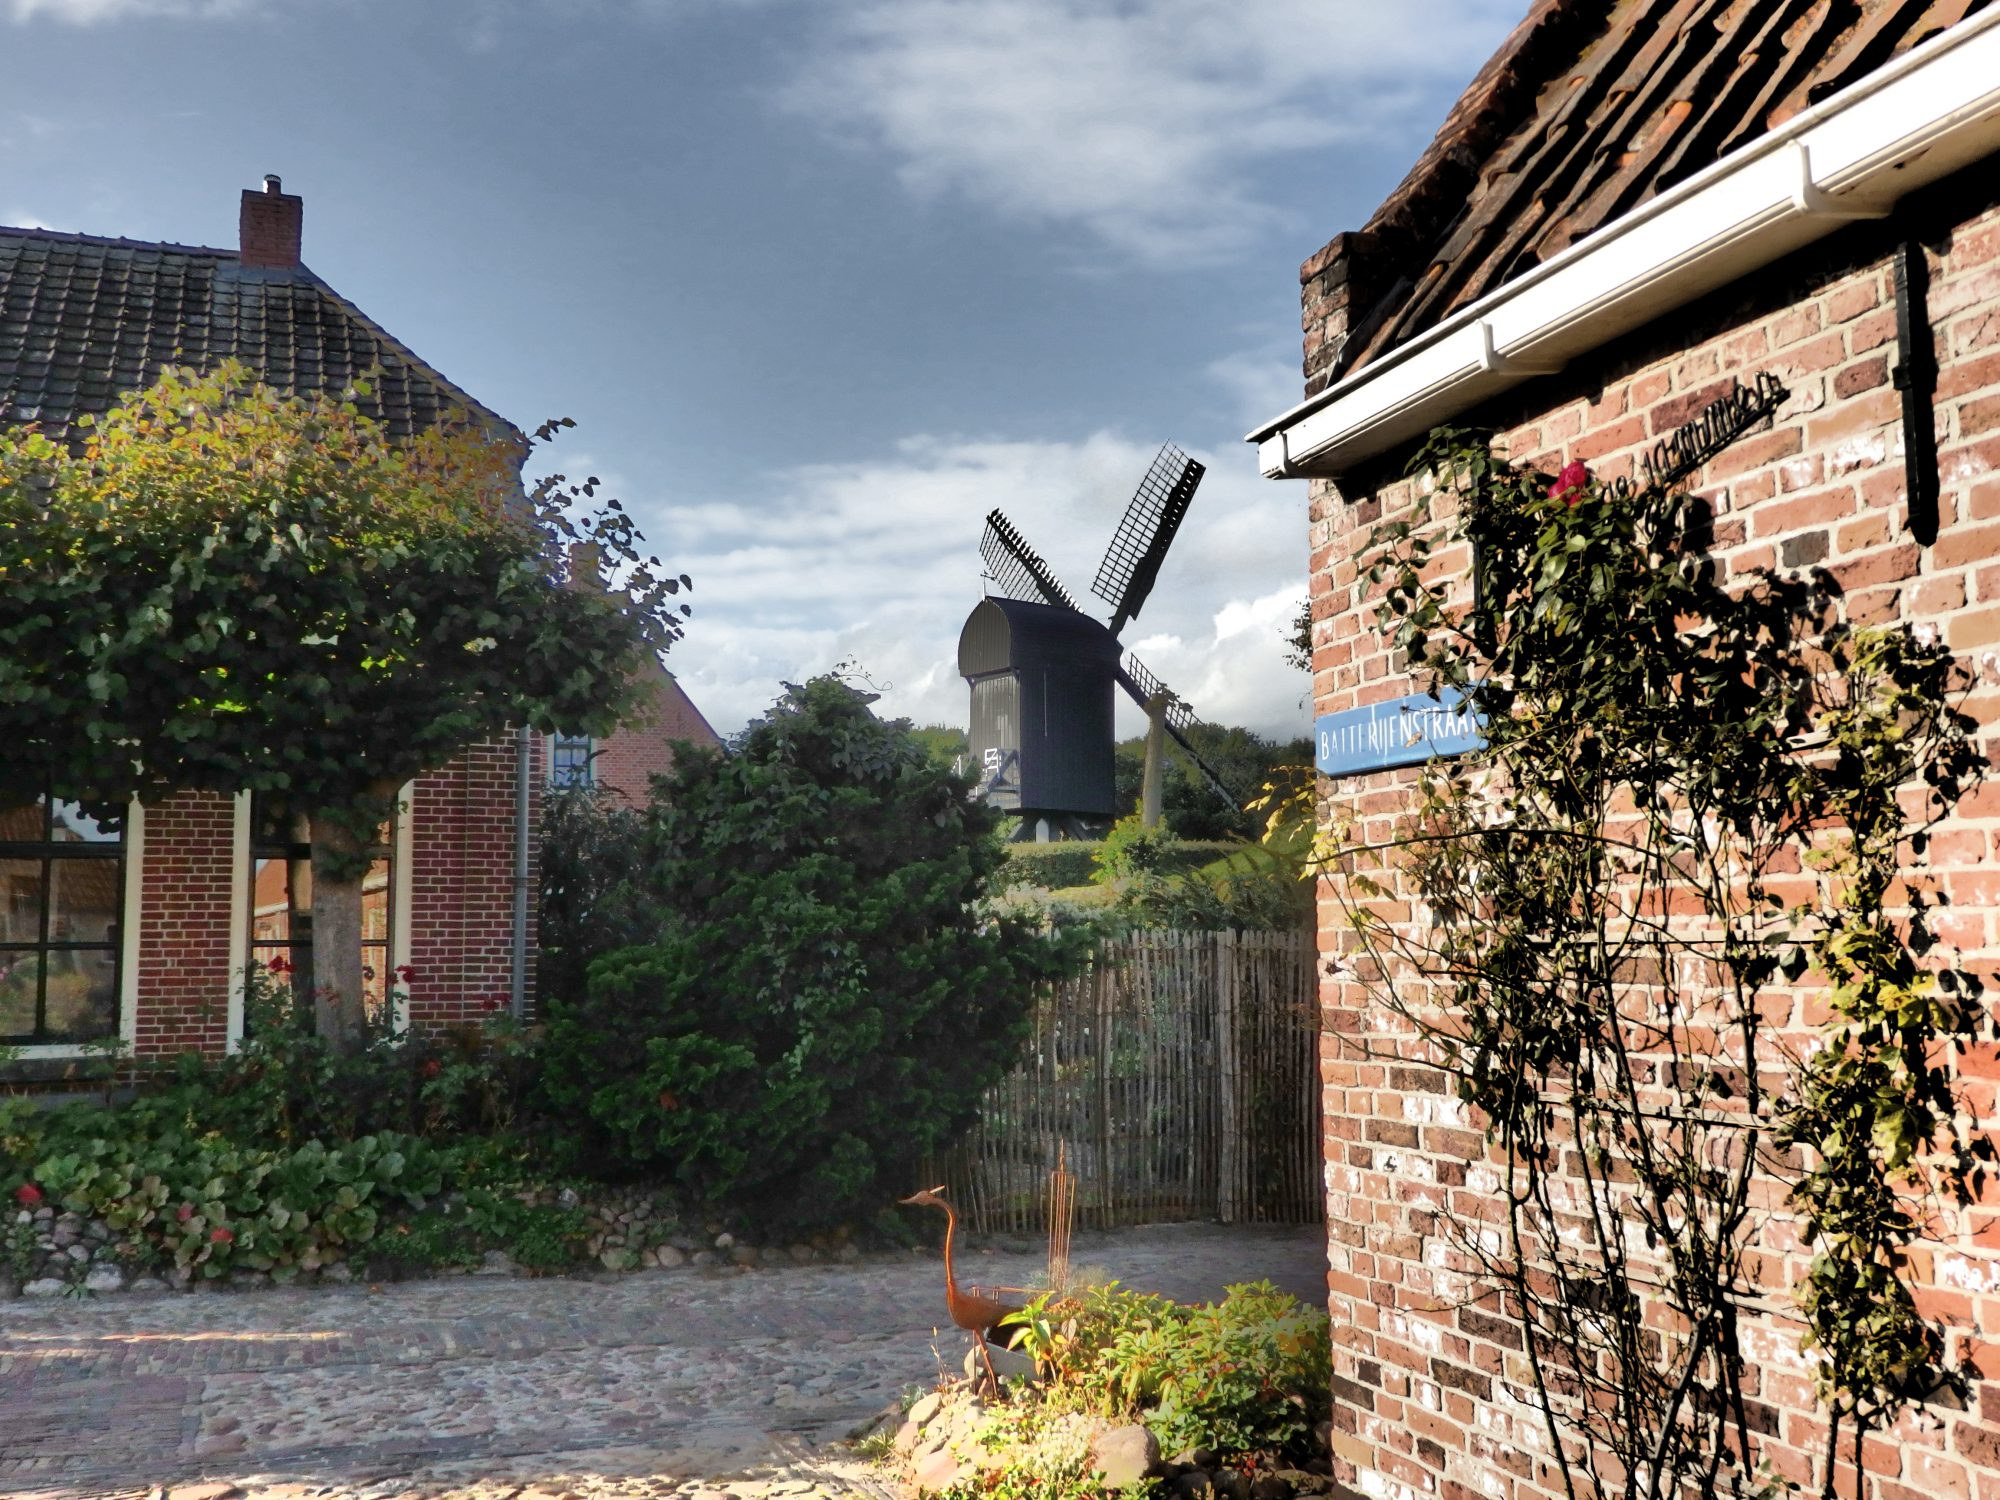 a view of the windmill on the wall of Bourtange